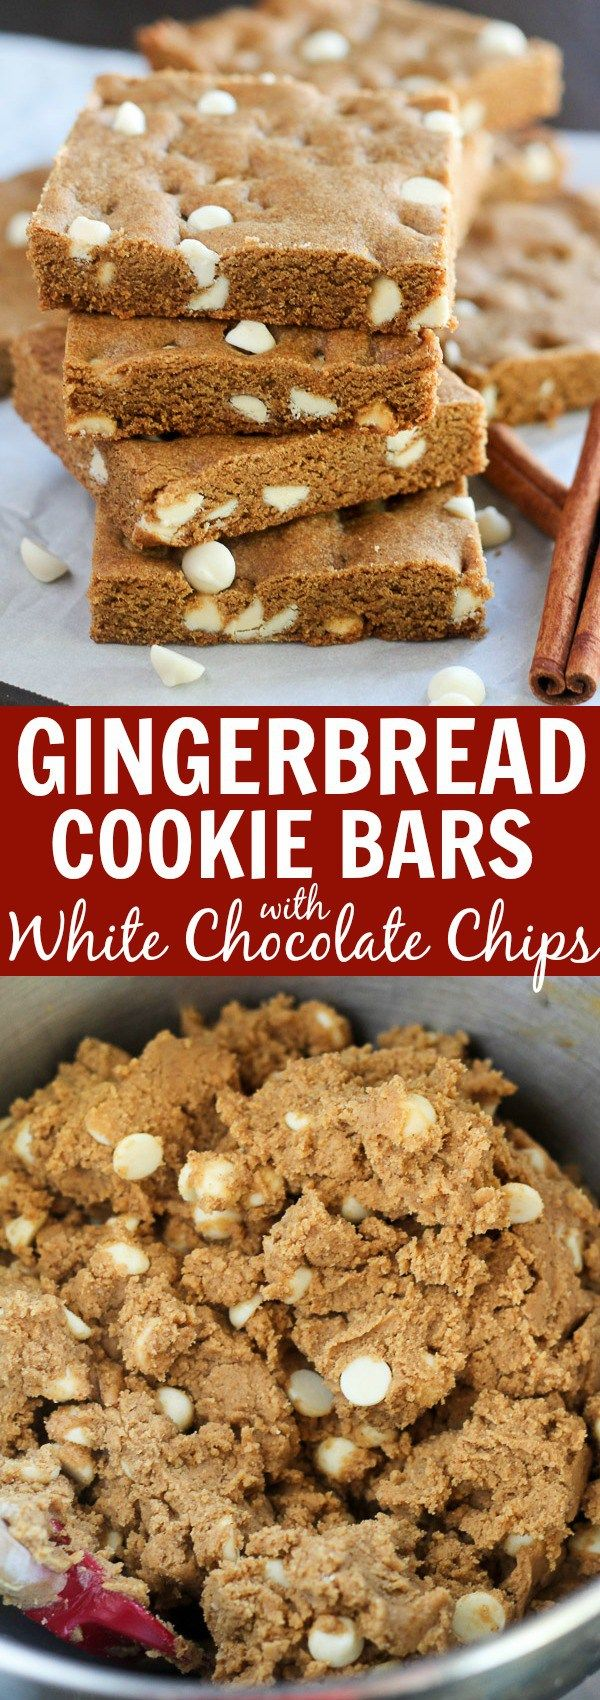 Gingerbread Bars with White Chocolate Chips #gingerbreadcookies